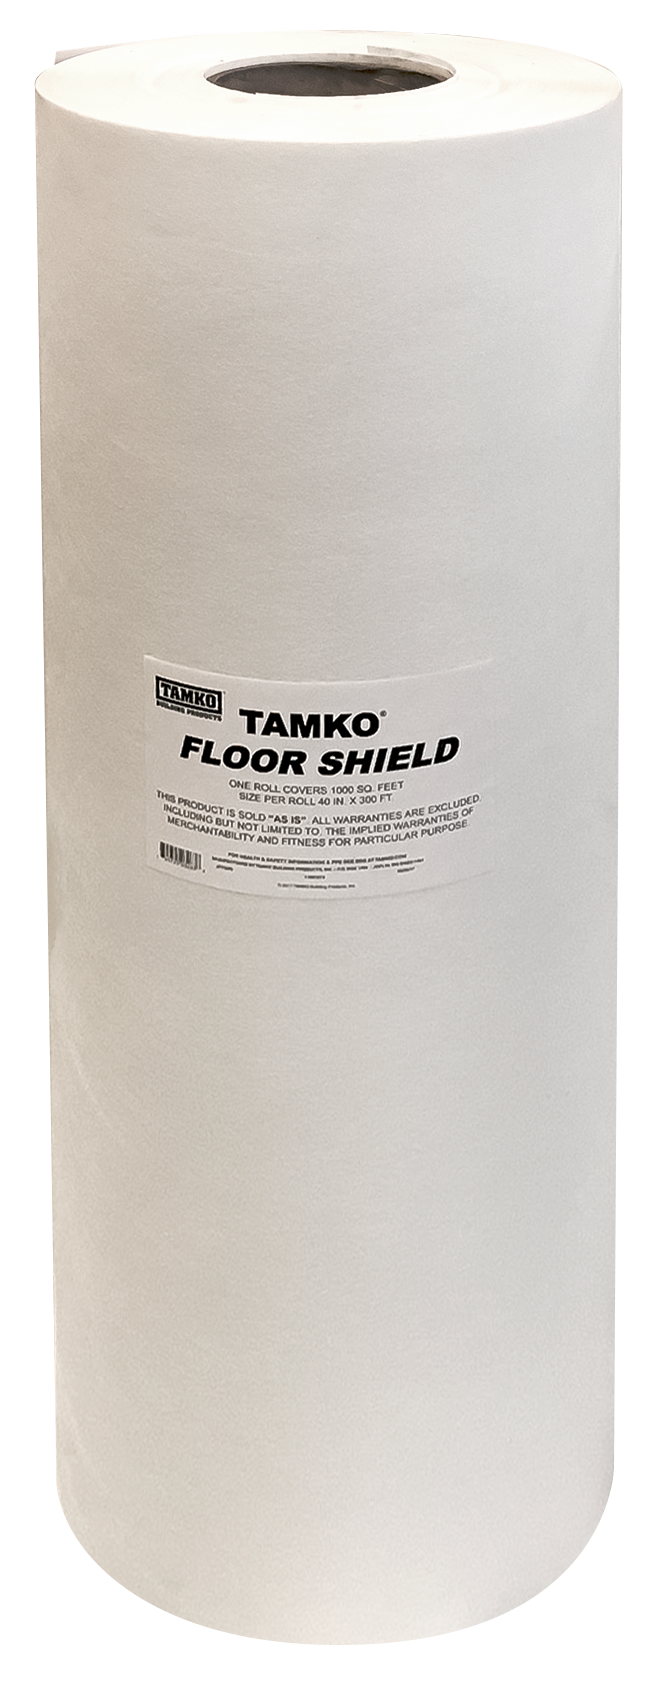 2018 Product Guide Structural Builder Magazine Products Wiring Cinder Block House Tamko Building Has Expanded Its Line Of Waterproofing With The Introduction Floor Shield